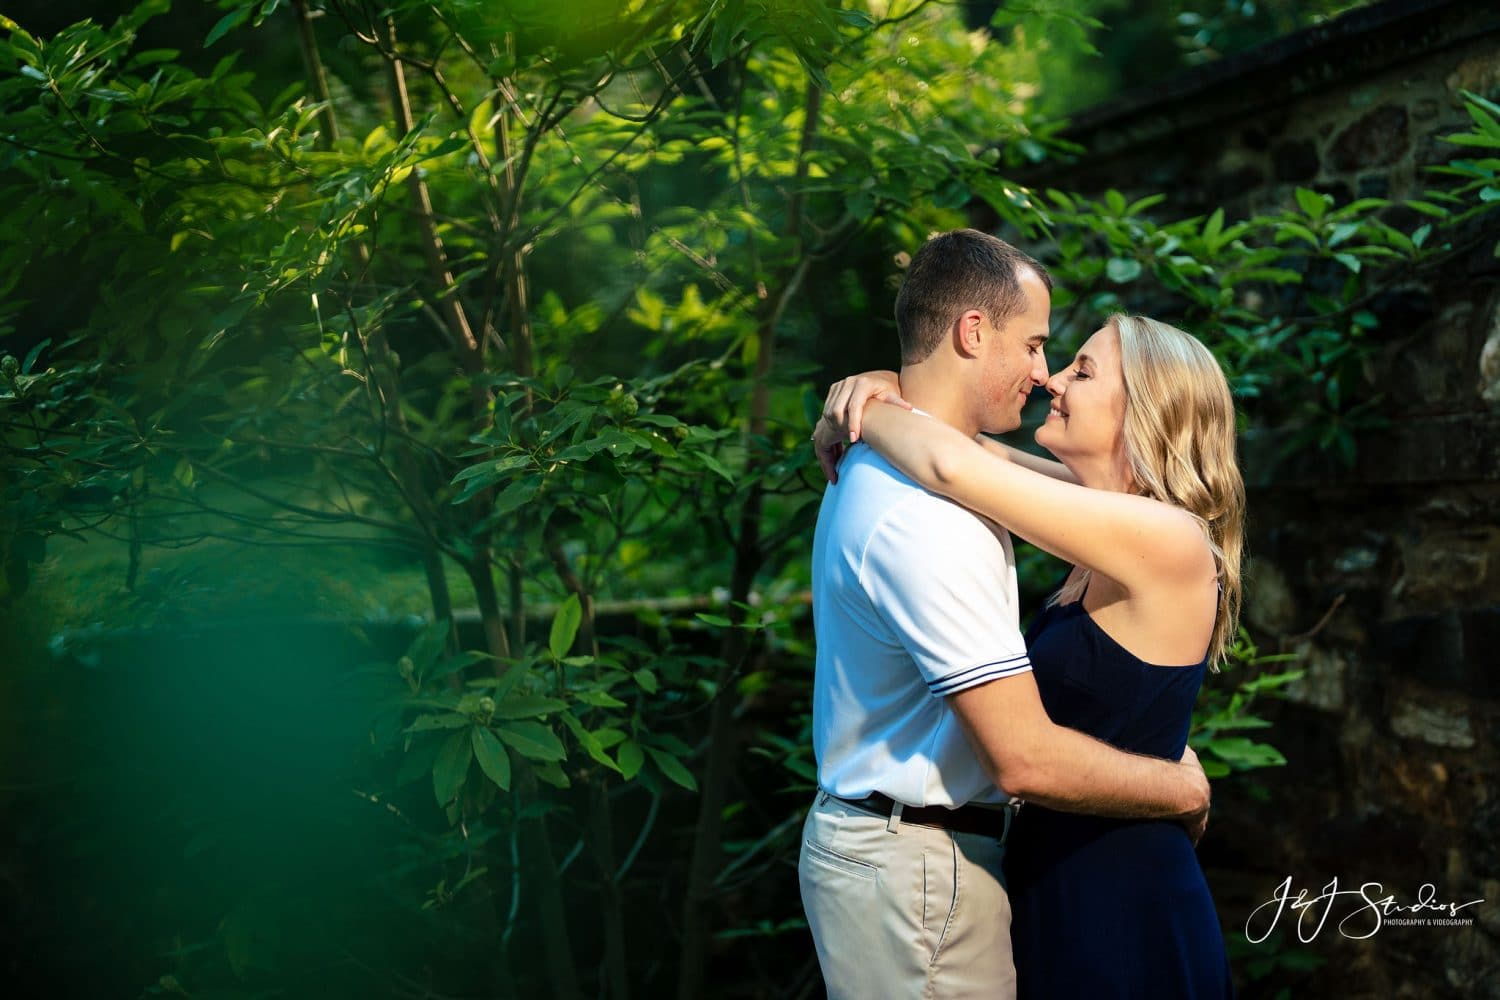 Taryn and Robert in love near Park trees Hunting Hill Mansion Engagement Shot By John Ryan